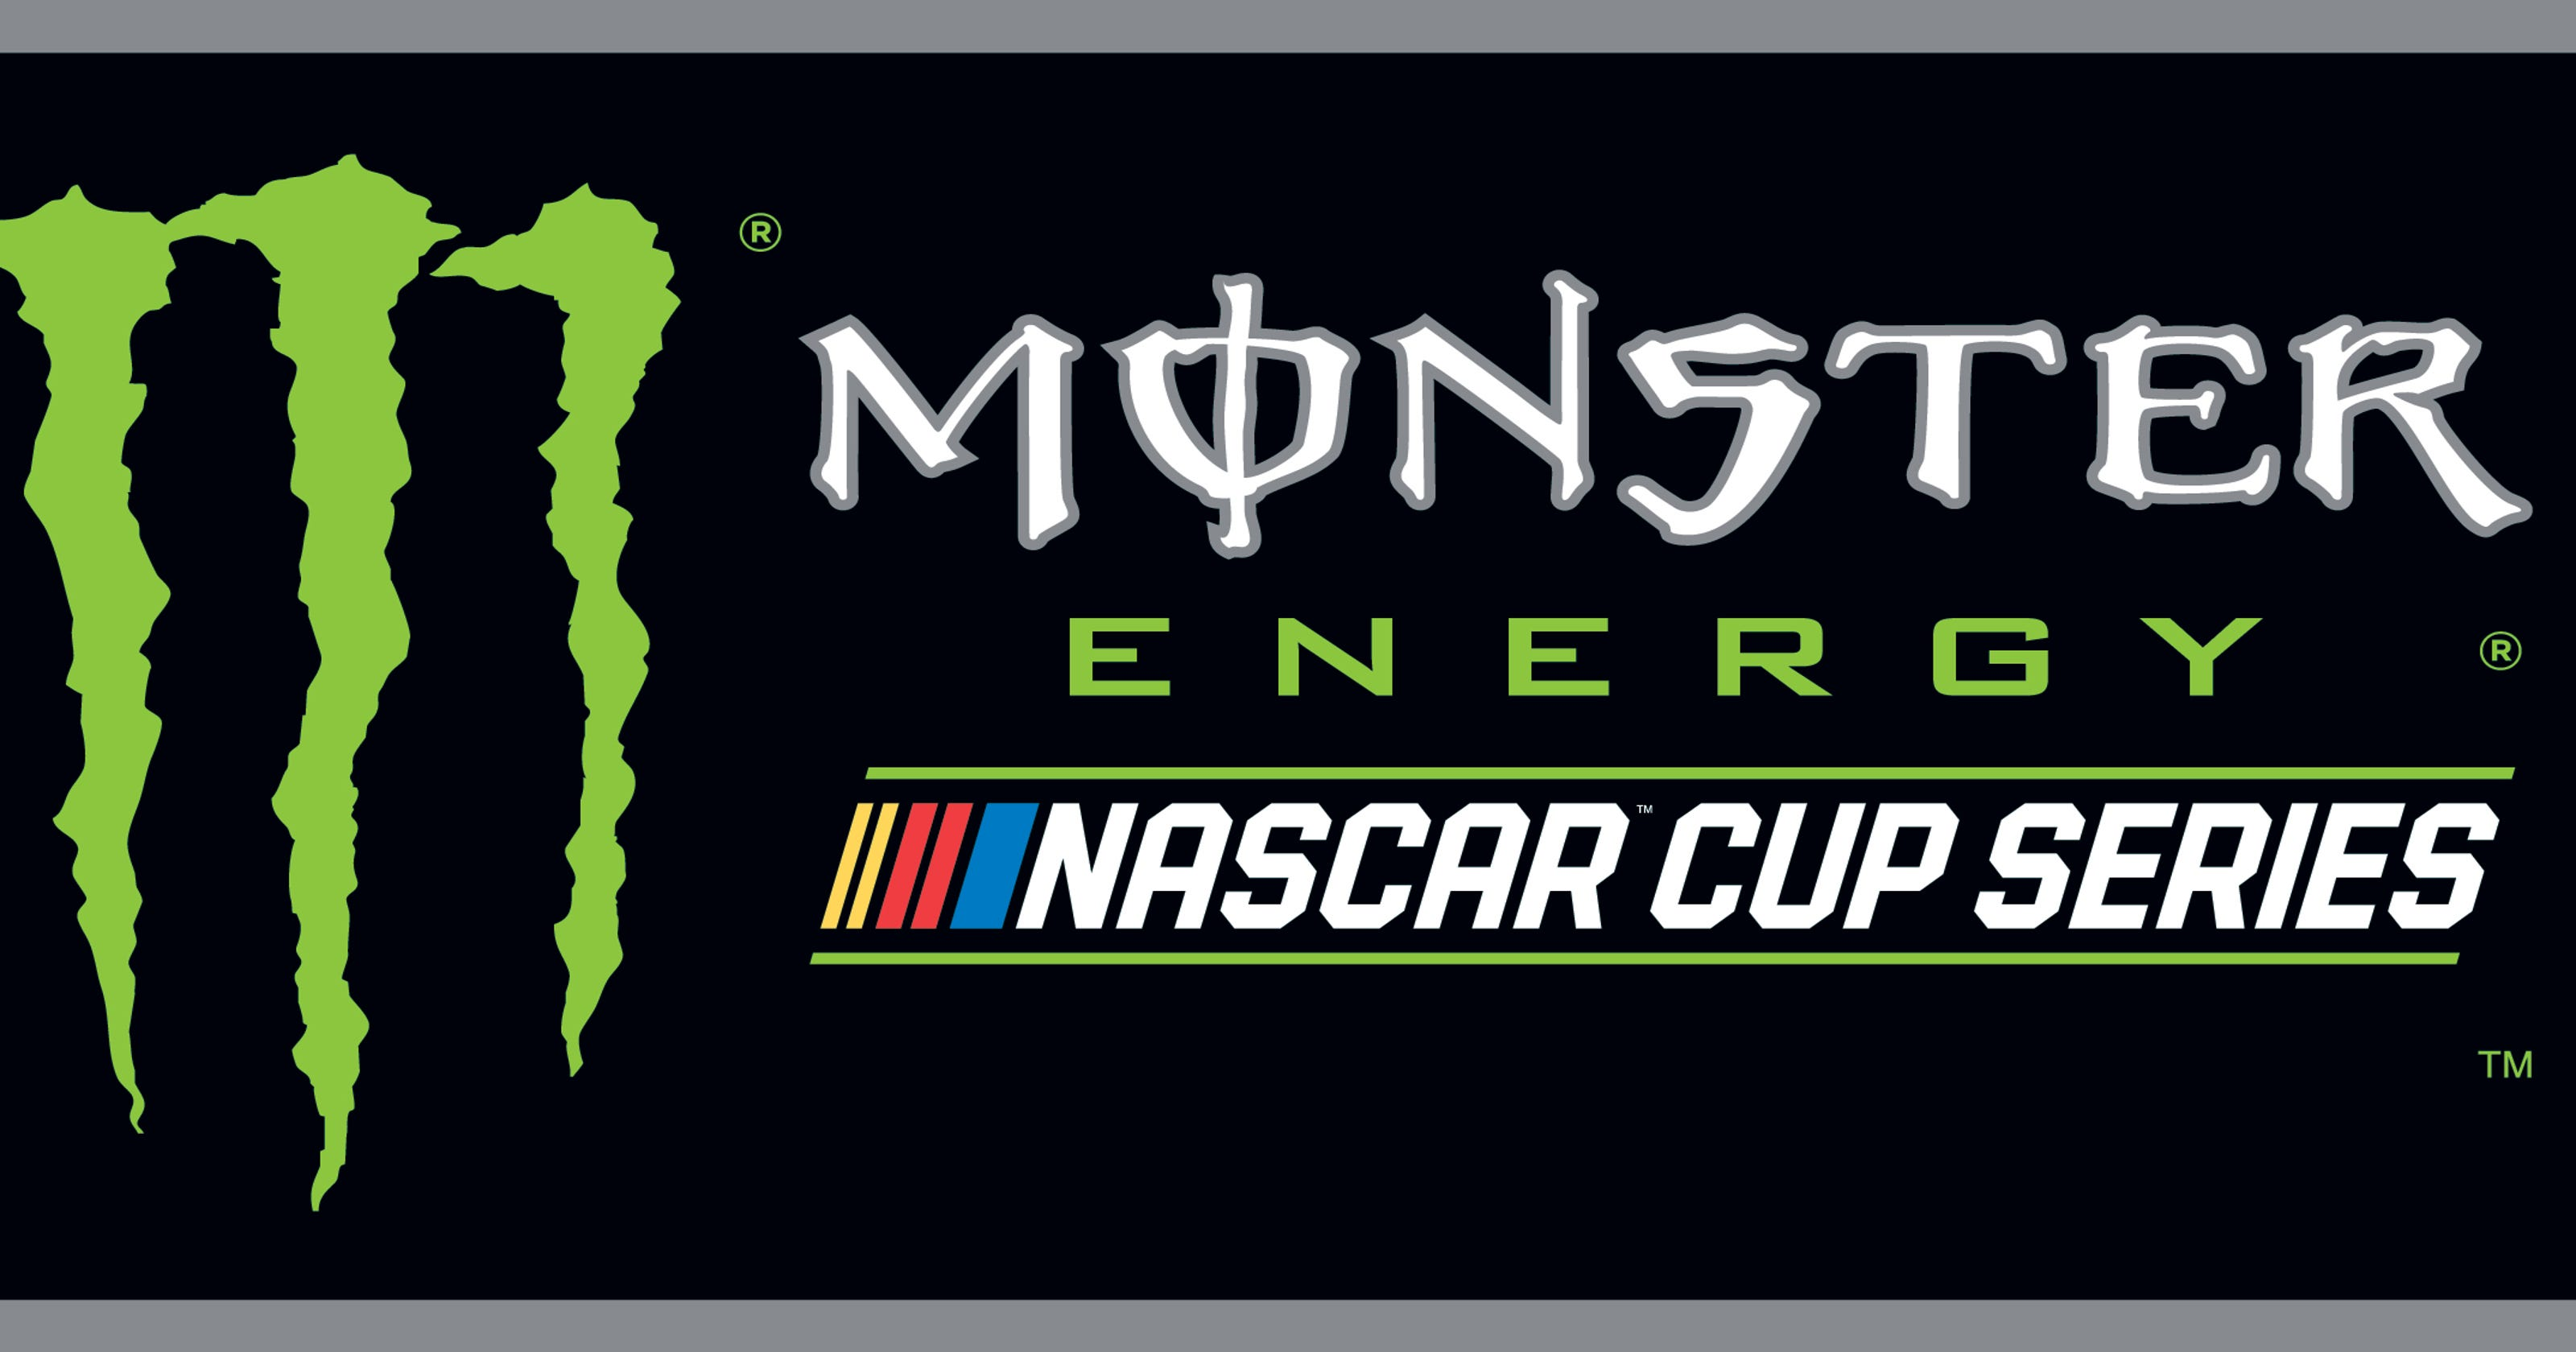 NASCAR unveils new name of its premier series